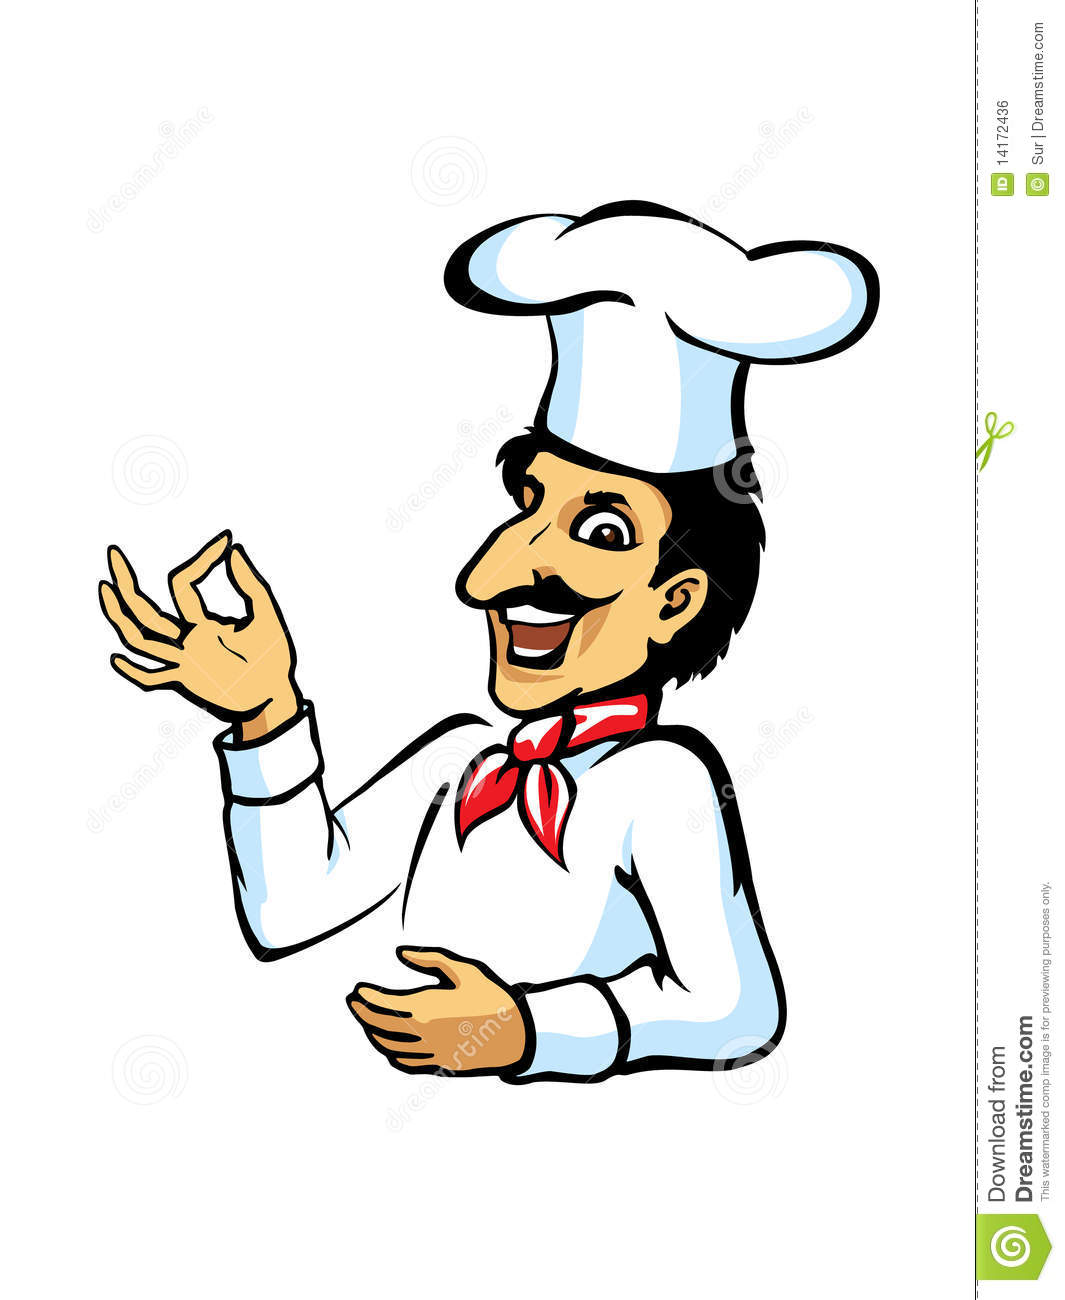 40106 Chef Hat Stock Vector Illustration And Royalty Free